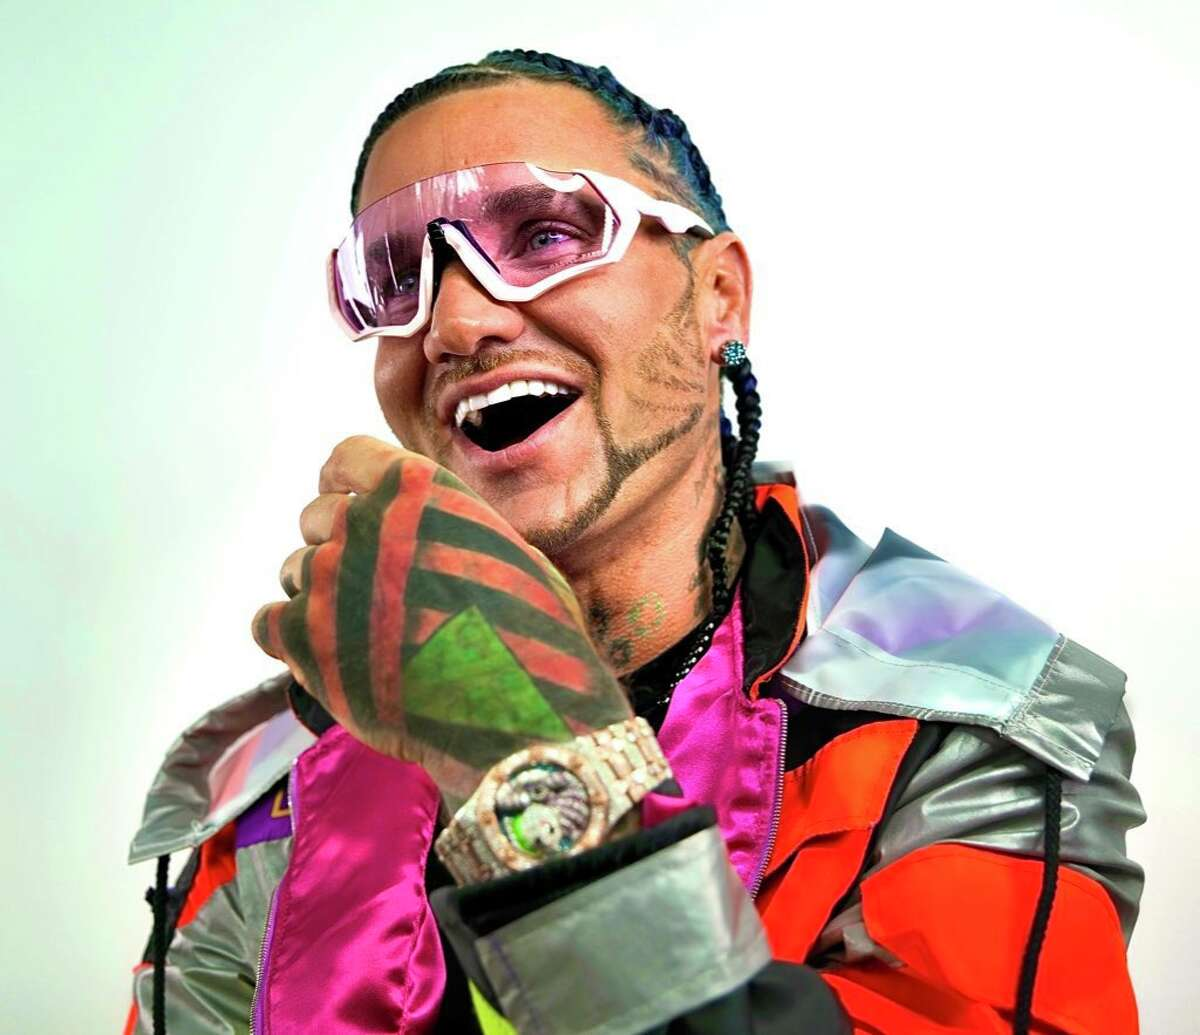 Riff Raff has made a lane for himself by not worrying about lanes.